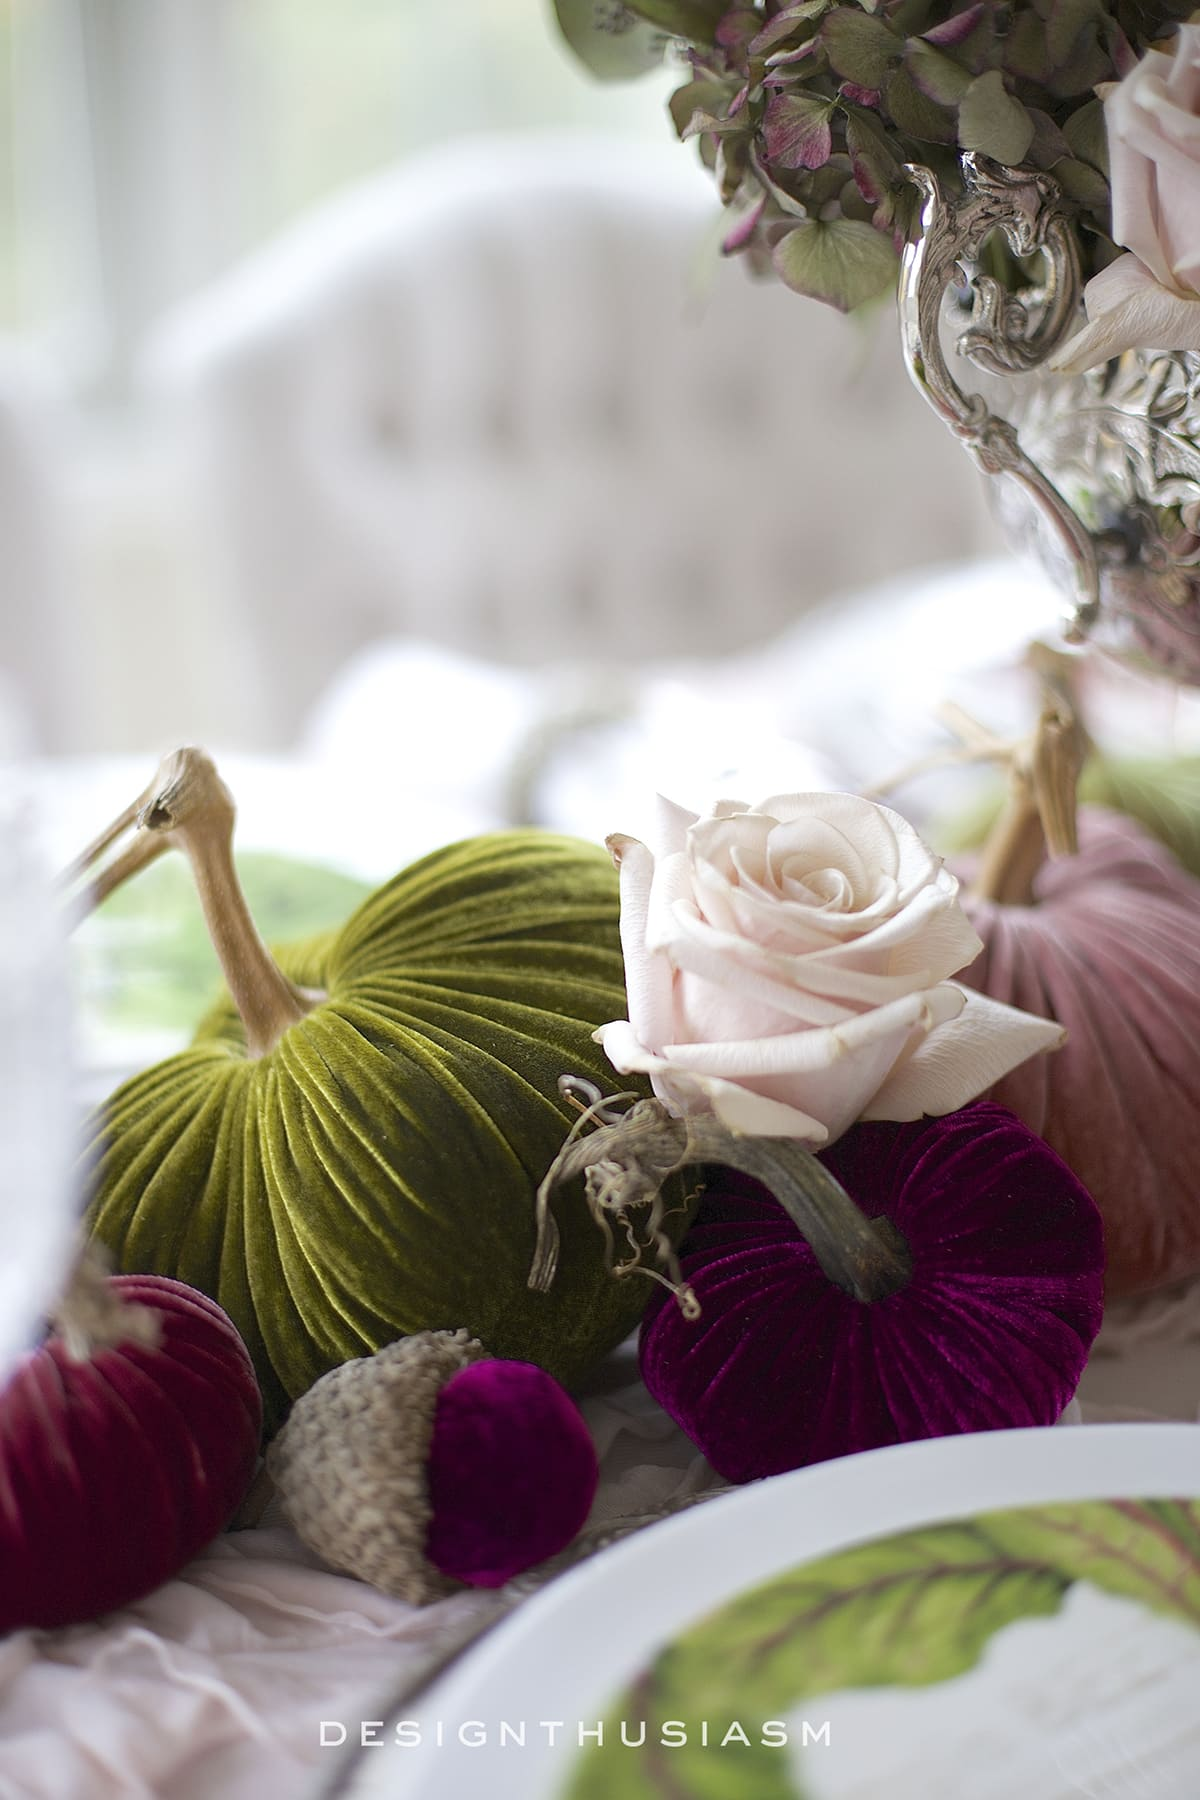 Using Velvet Pumpkins in an Elegant Fall Tablescape | Designthusiasm.com